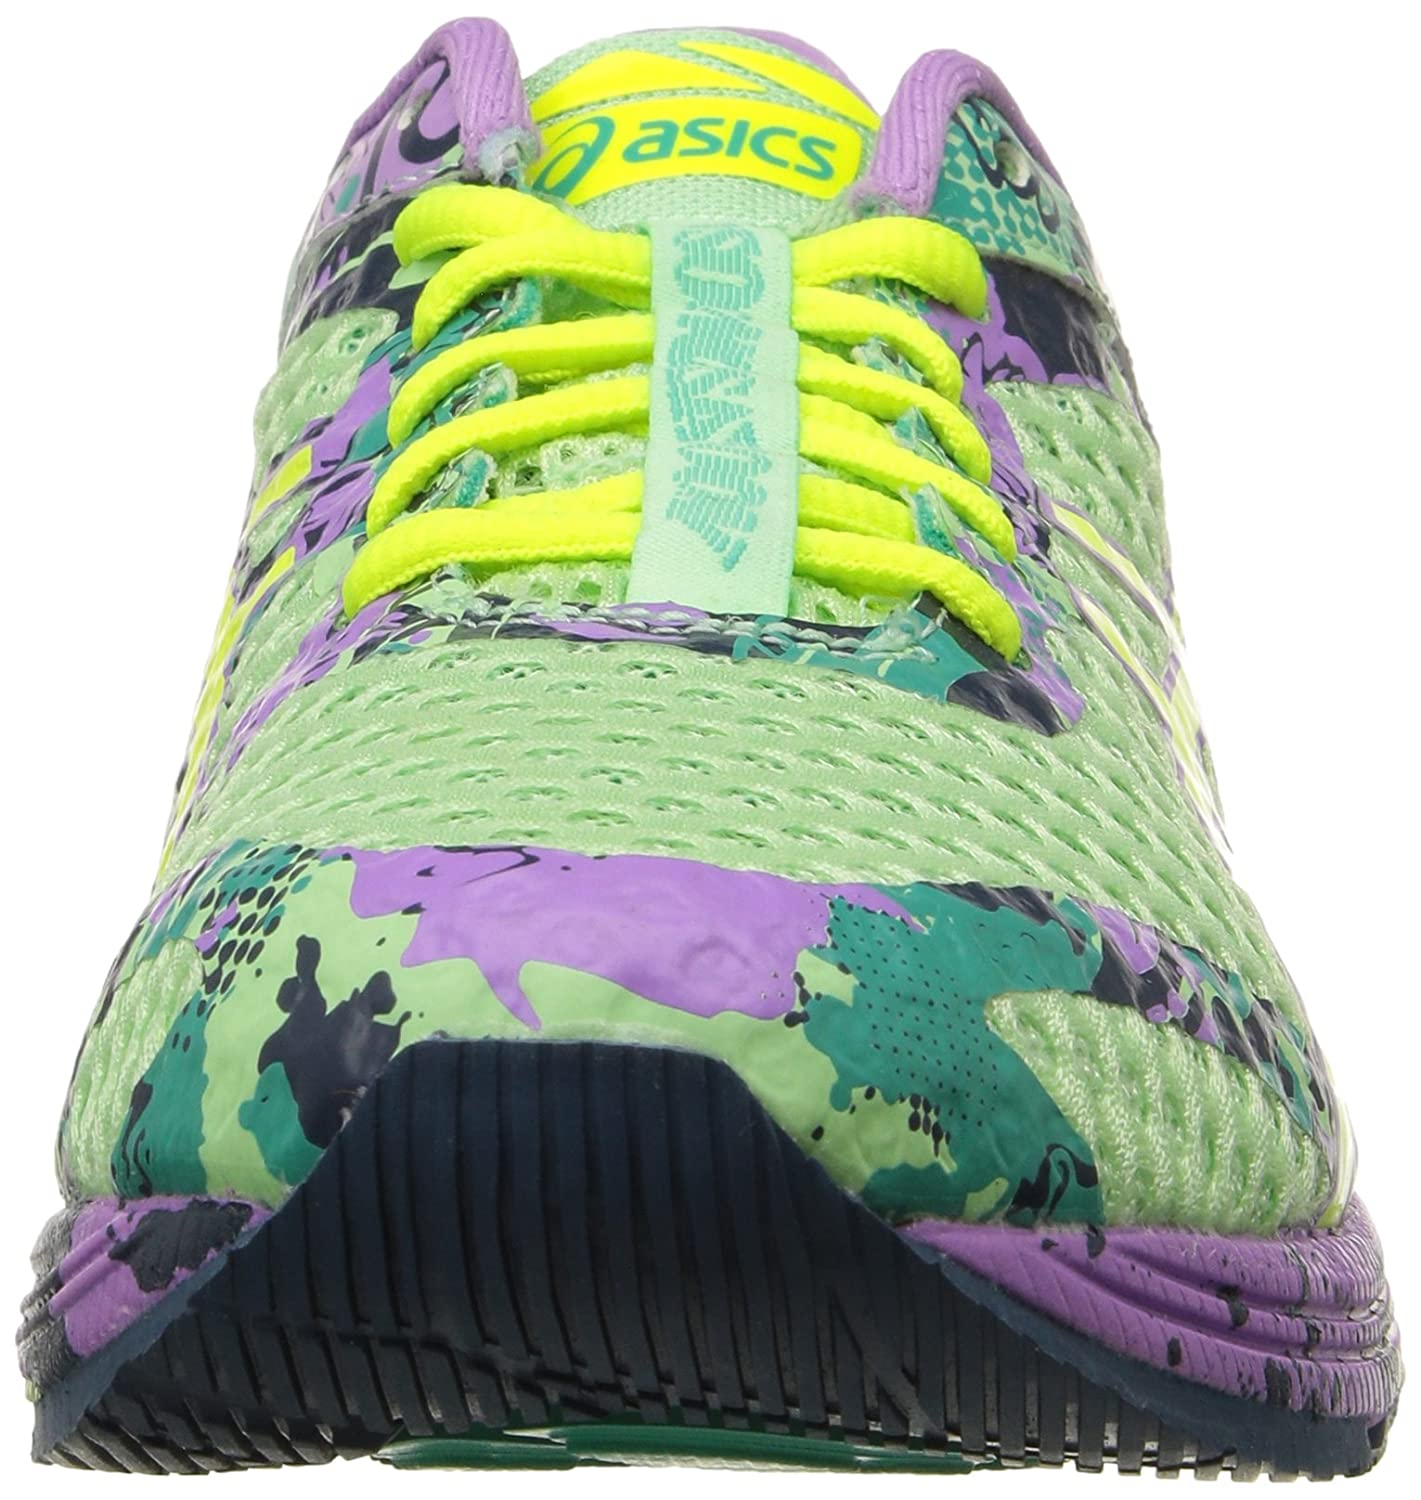 6d9c98f430d3 ASICS Women s Gel-Noosa Tri 11 Running Shoe  Amazon.ca  Shoes   Handbags